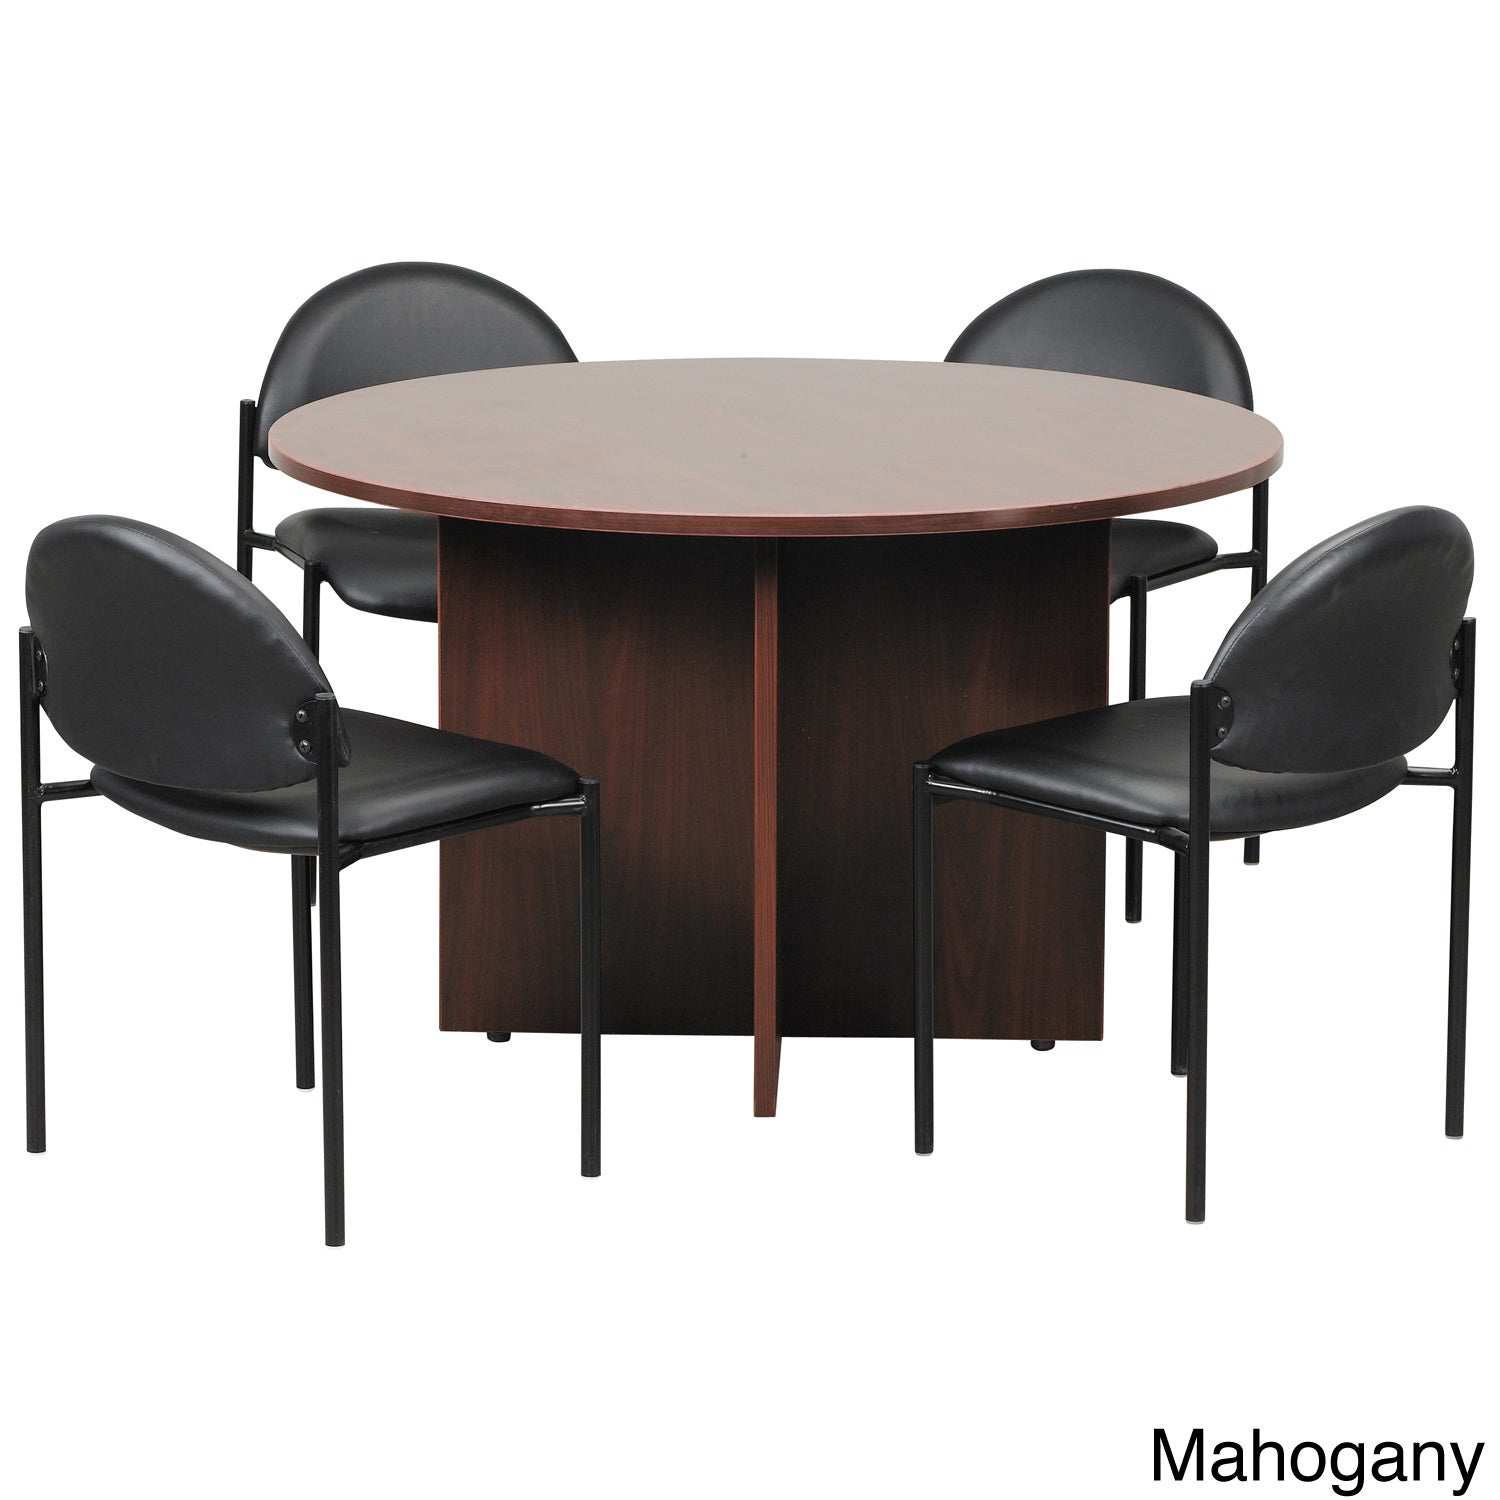 Shop Boss Inch Round Conference Table Free Shipping Today - 42 inch round office table